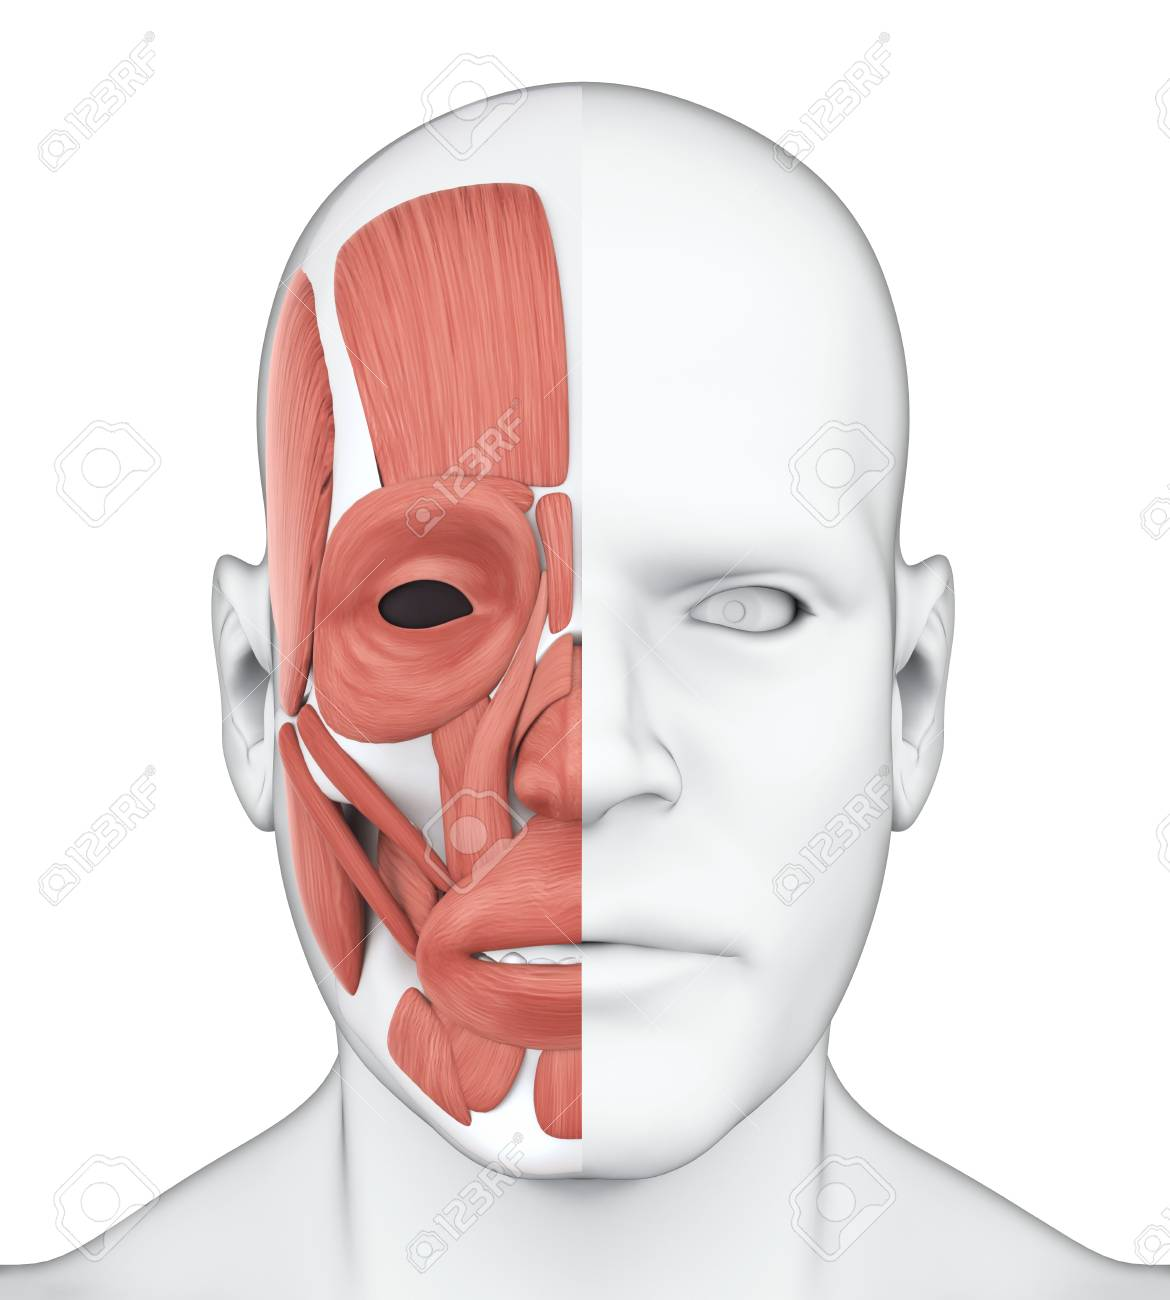 Human Facial Muscles Anatomy Stock Photo, Picture And Royalty Free ...